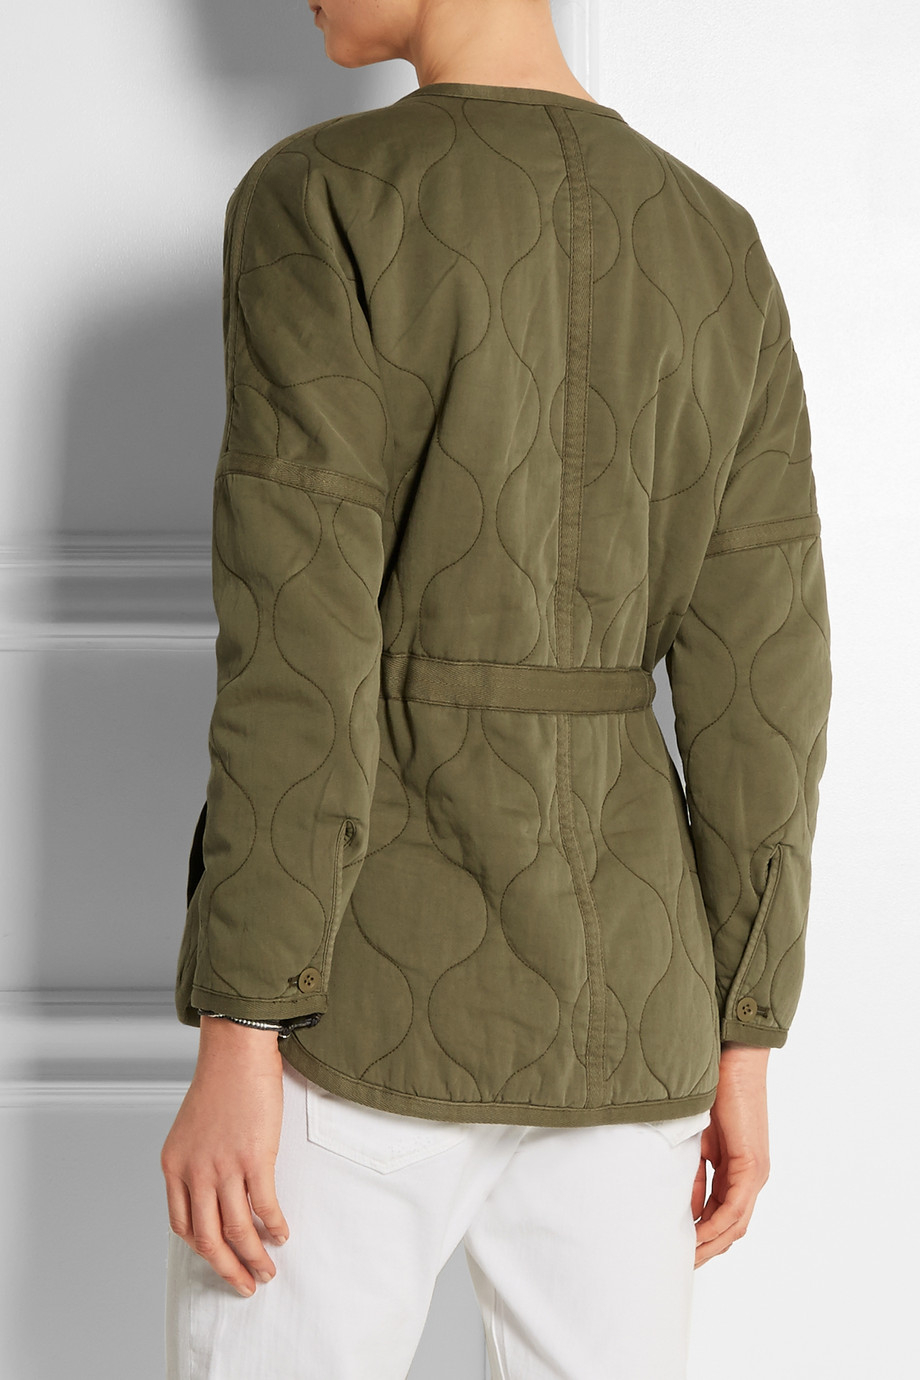 Green quilted jacket women